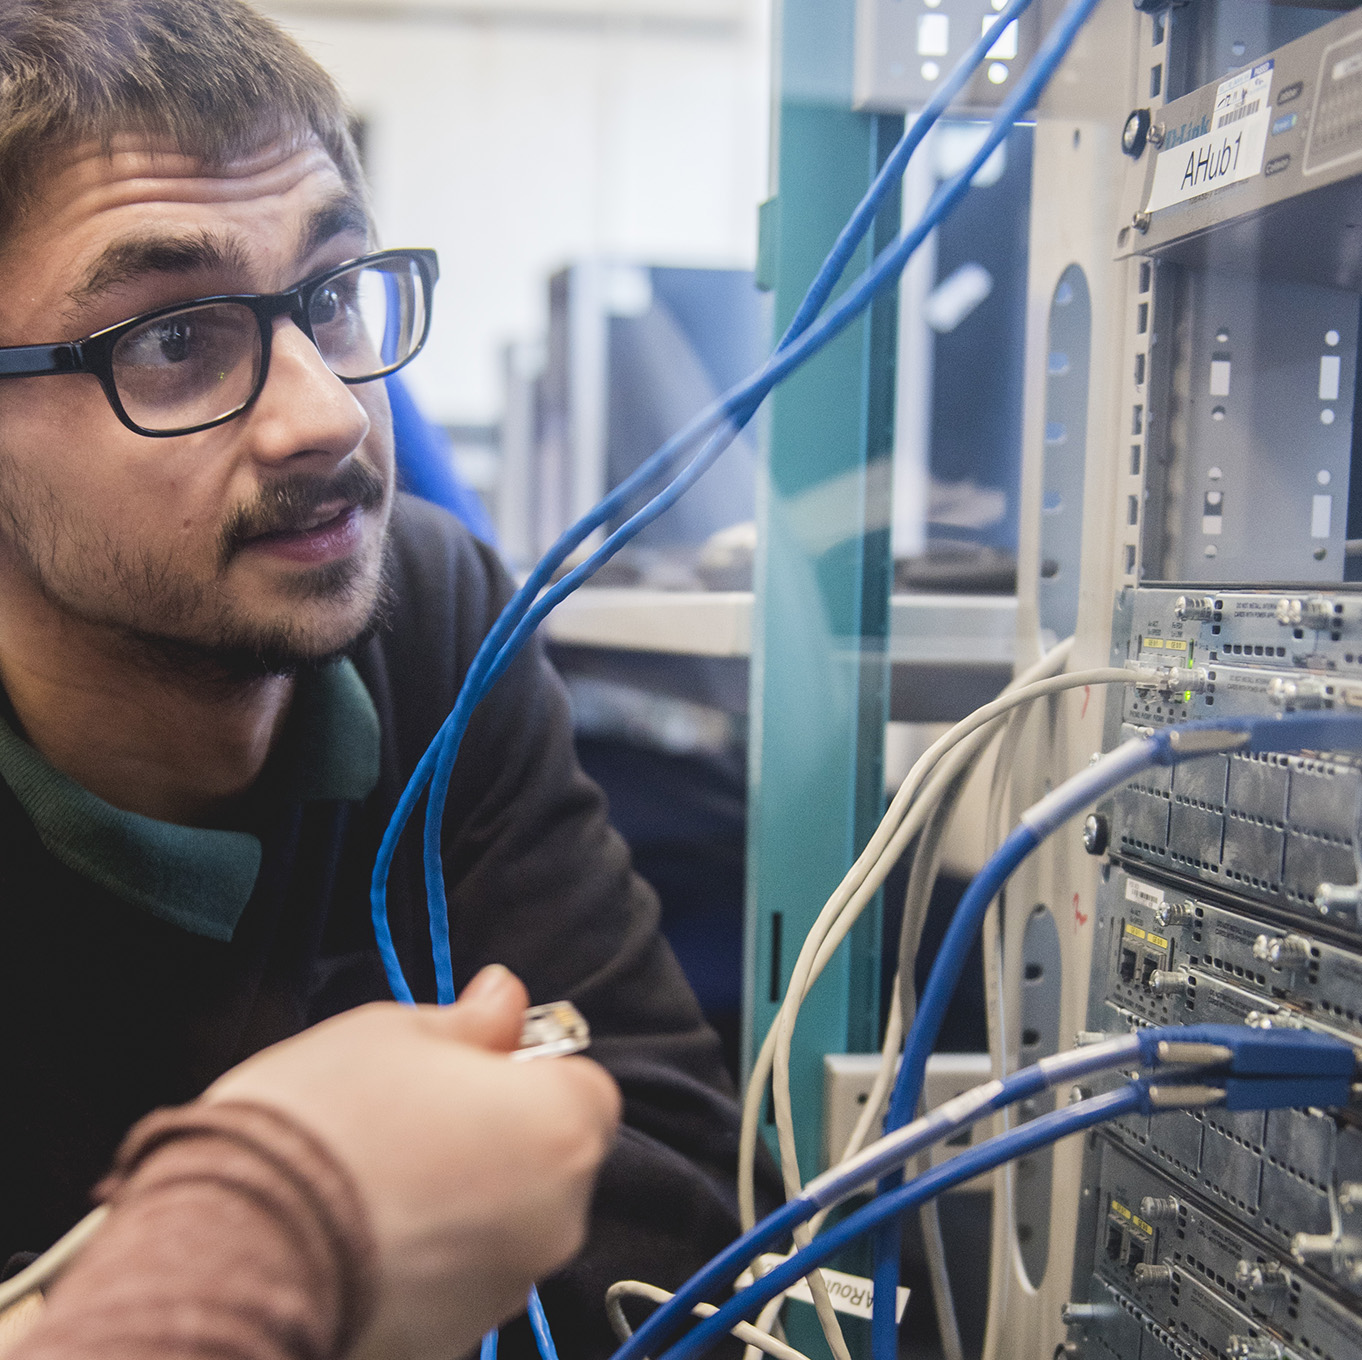 A computing student working on a networking project